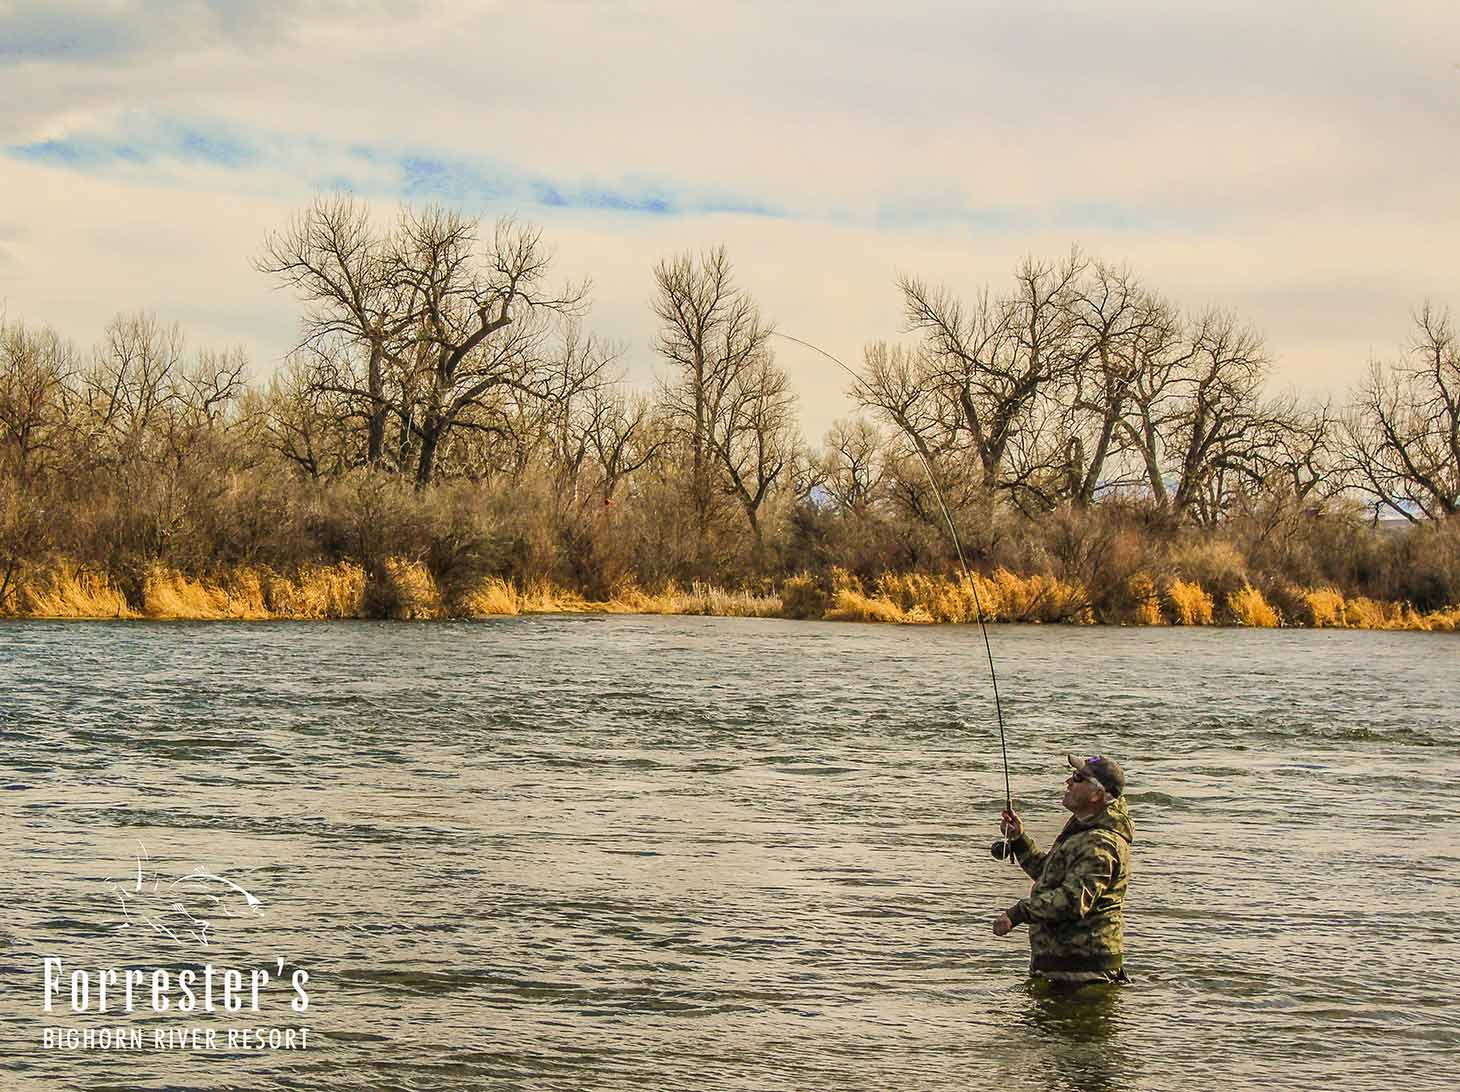 Big Horn River Fishing Report, Fly fishing Montana, Fly fishing on the Bighorn River, Montana Fly Fishing, Montana Lodging, Montana, Fly fishing